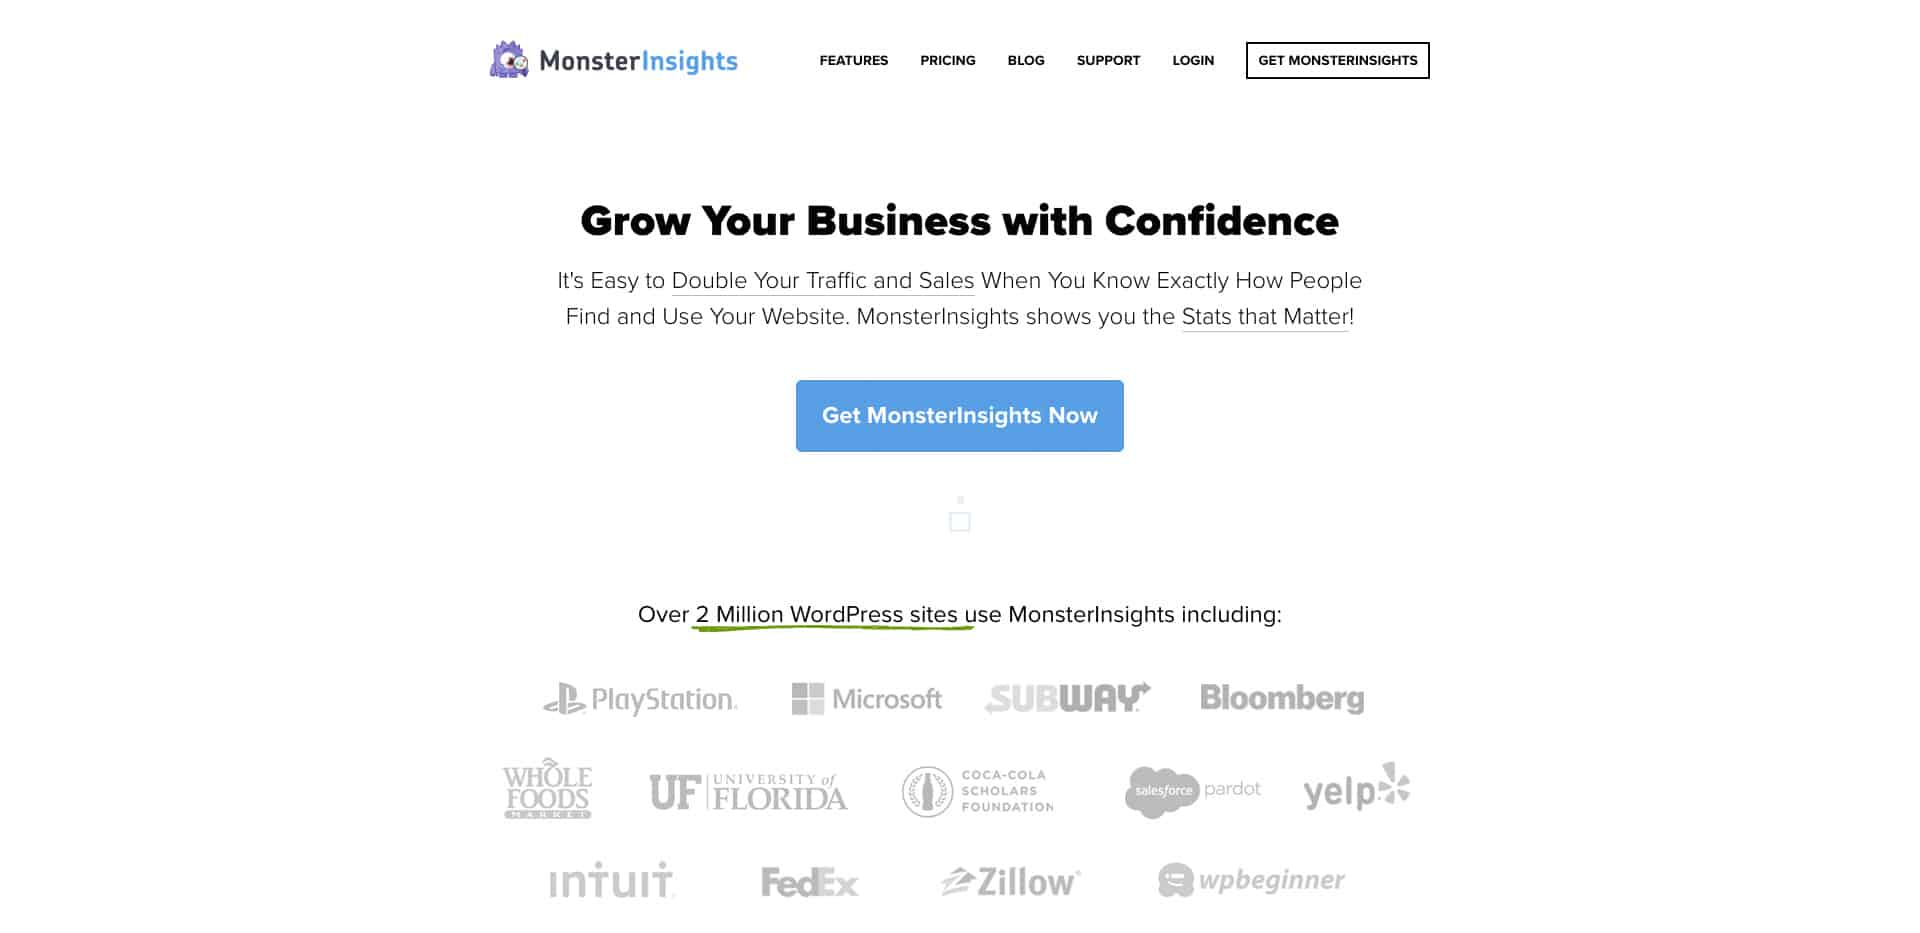 MonsterInsights, LLC